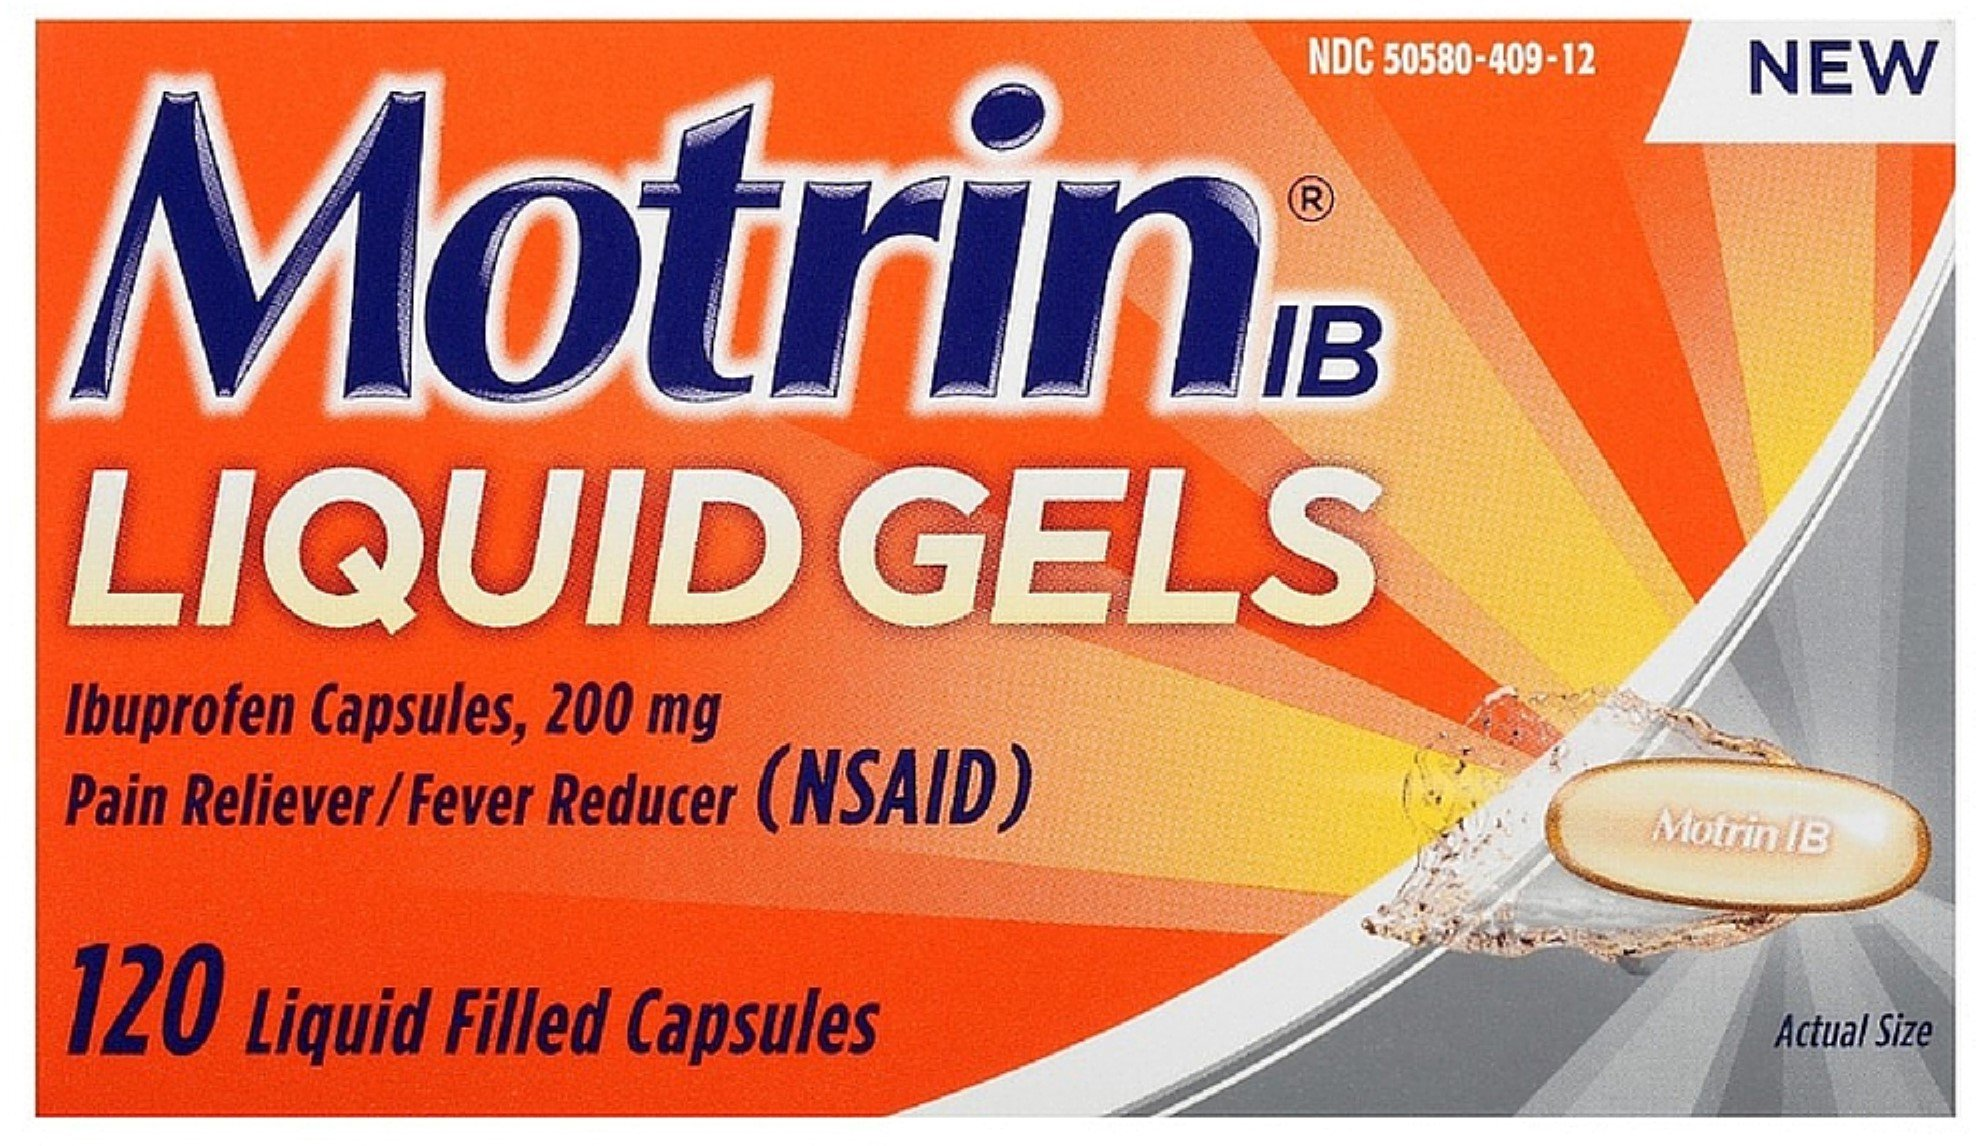 Motrin IB Pain Reliever/Fever Reducer Liquid Gels 120 ea (2 Pack) by Motrin